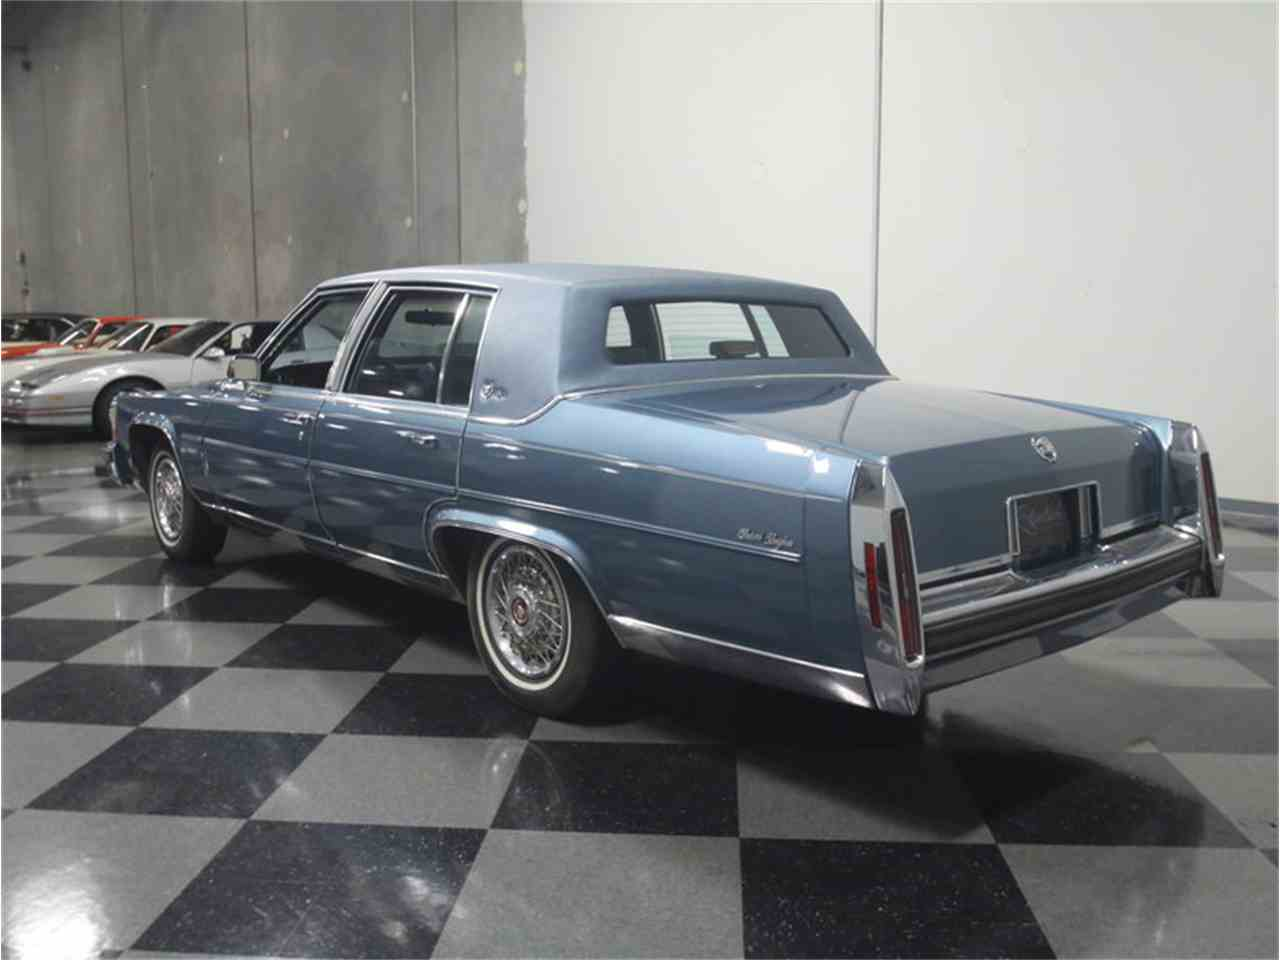 Large Picture of 1986 Fleetwood Brougham - $8,995.00 - LHHW